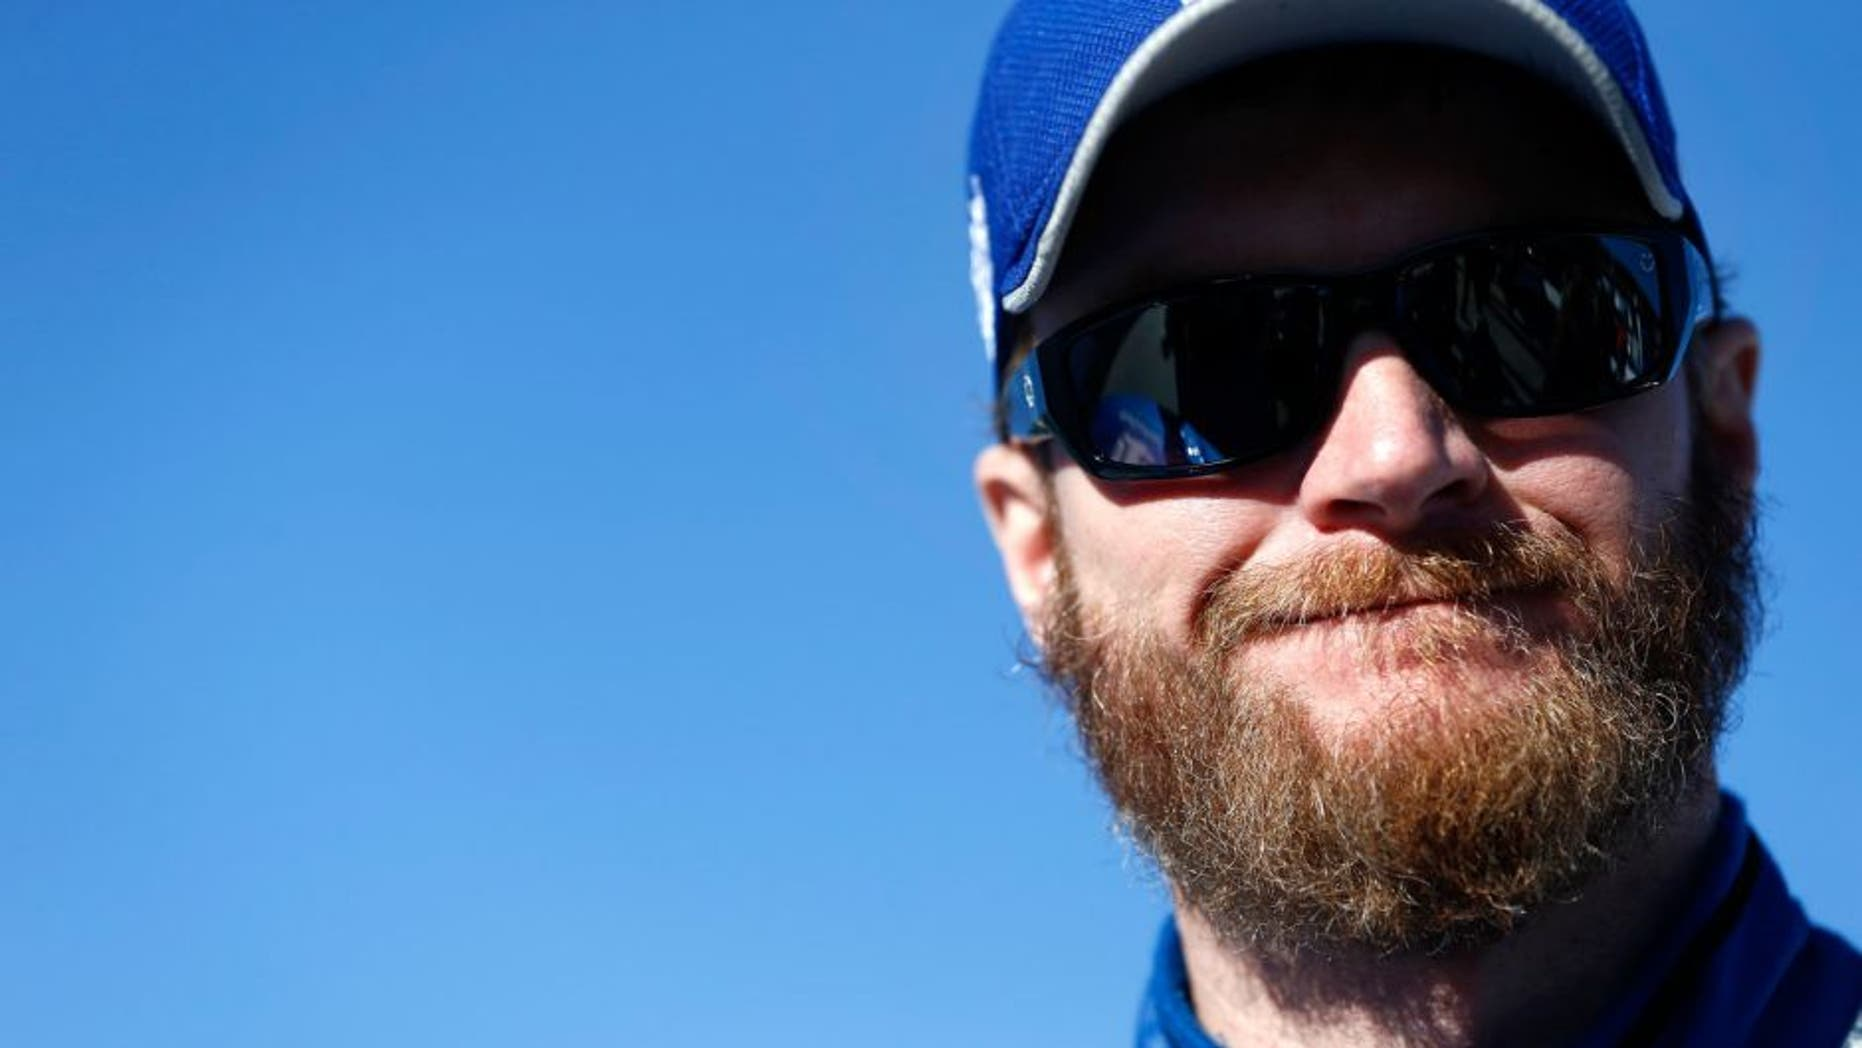 MARTINSVILLE, VA - OCTOBER 30: Dale Earnhardt Jr., driver of the #88 Nationwide Chevrolet, stands on the grid during qualifying for the NASCAR Sprint Cup Series Goody's Headache Relief Shot 500 at Martinsville Speedway on October 30, 2015 in Martinsville, Virginia. (Photo by Jeff Zelevansky/Getty Images)